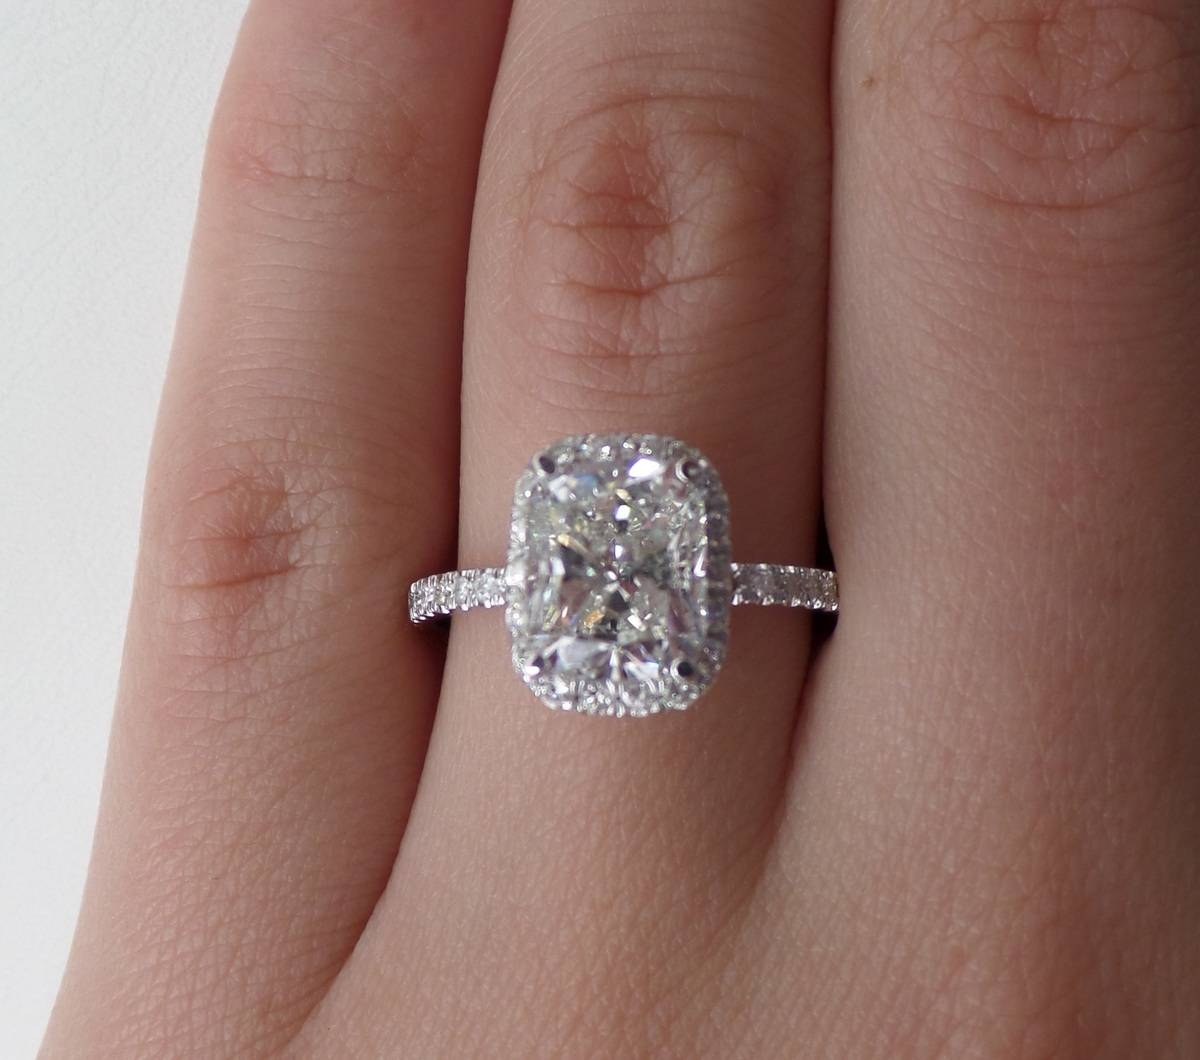 2 Carat Diamond Solitaire Engagement Rings Hd |Ring | Diamantbilds Within 2.0 Carat Diamond Engagement Ring (Gallery 8 of 15)